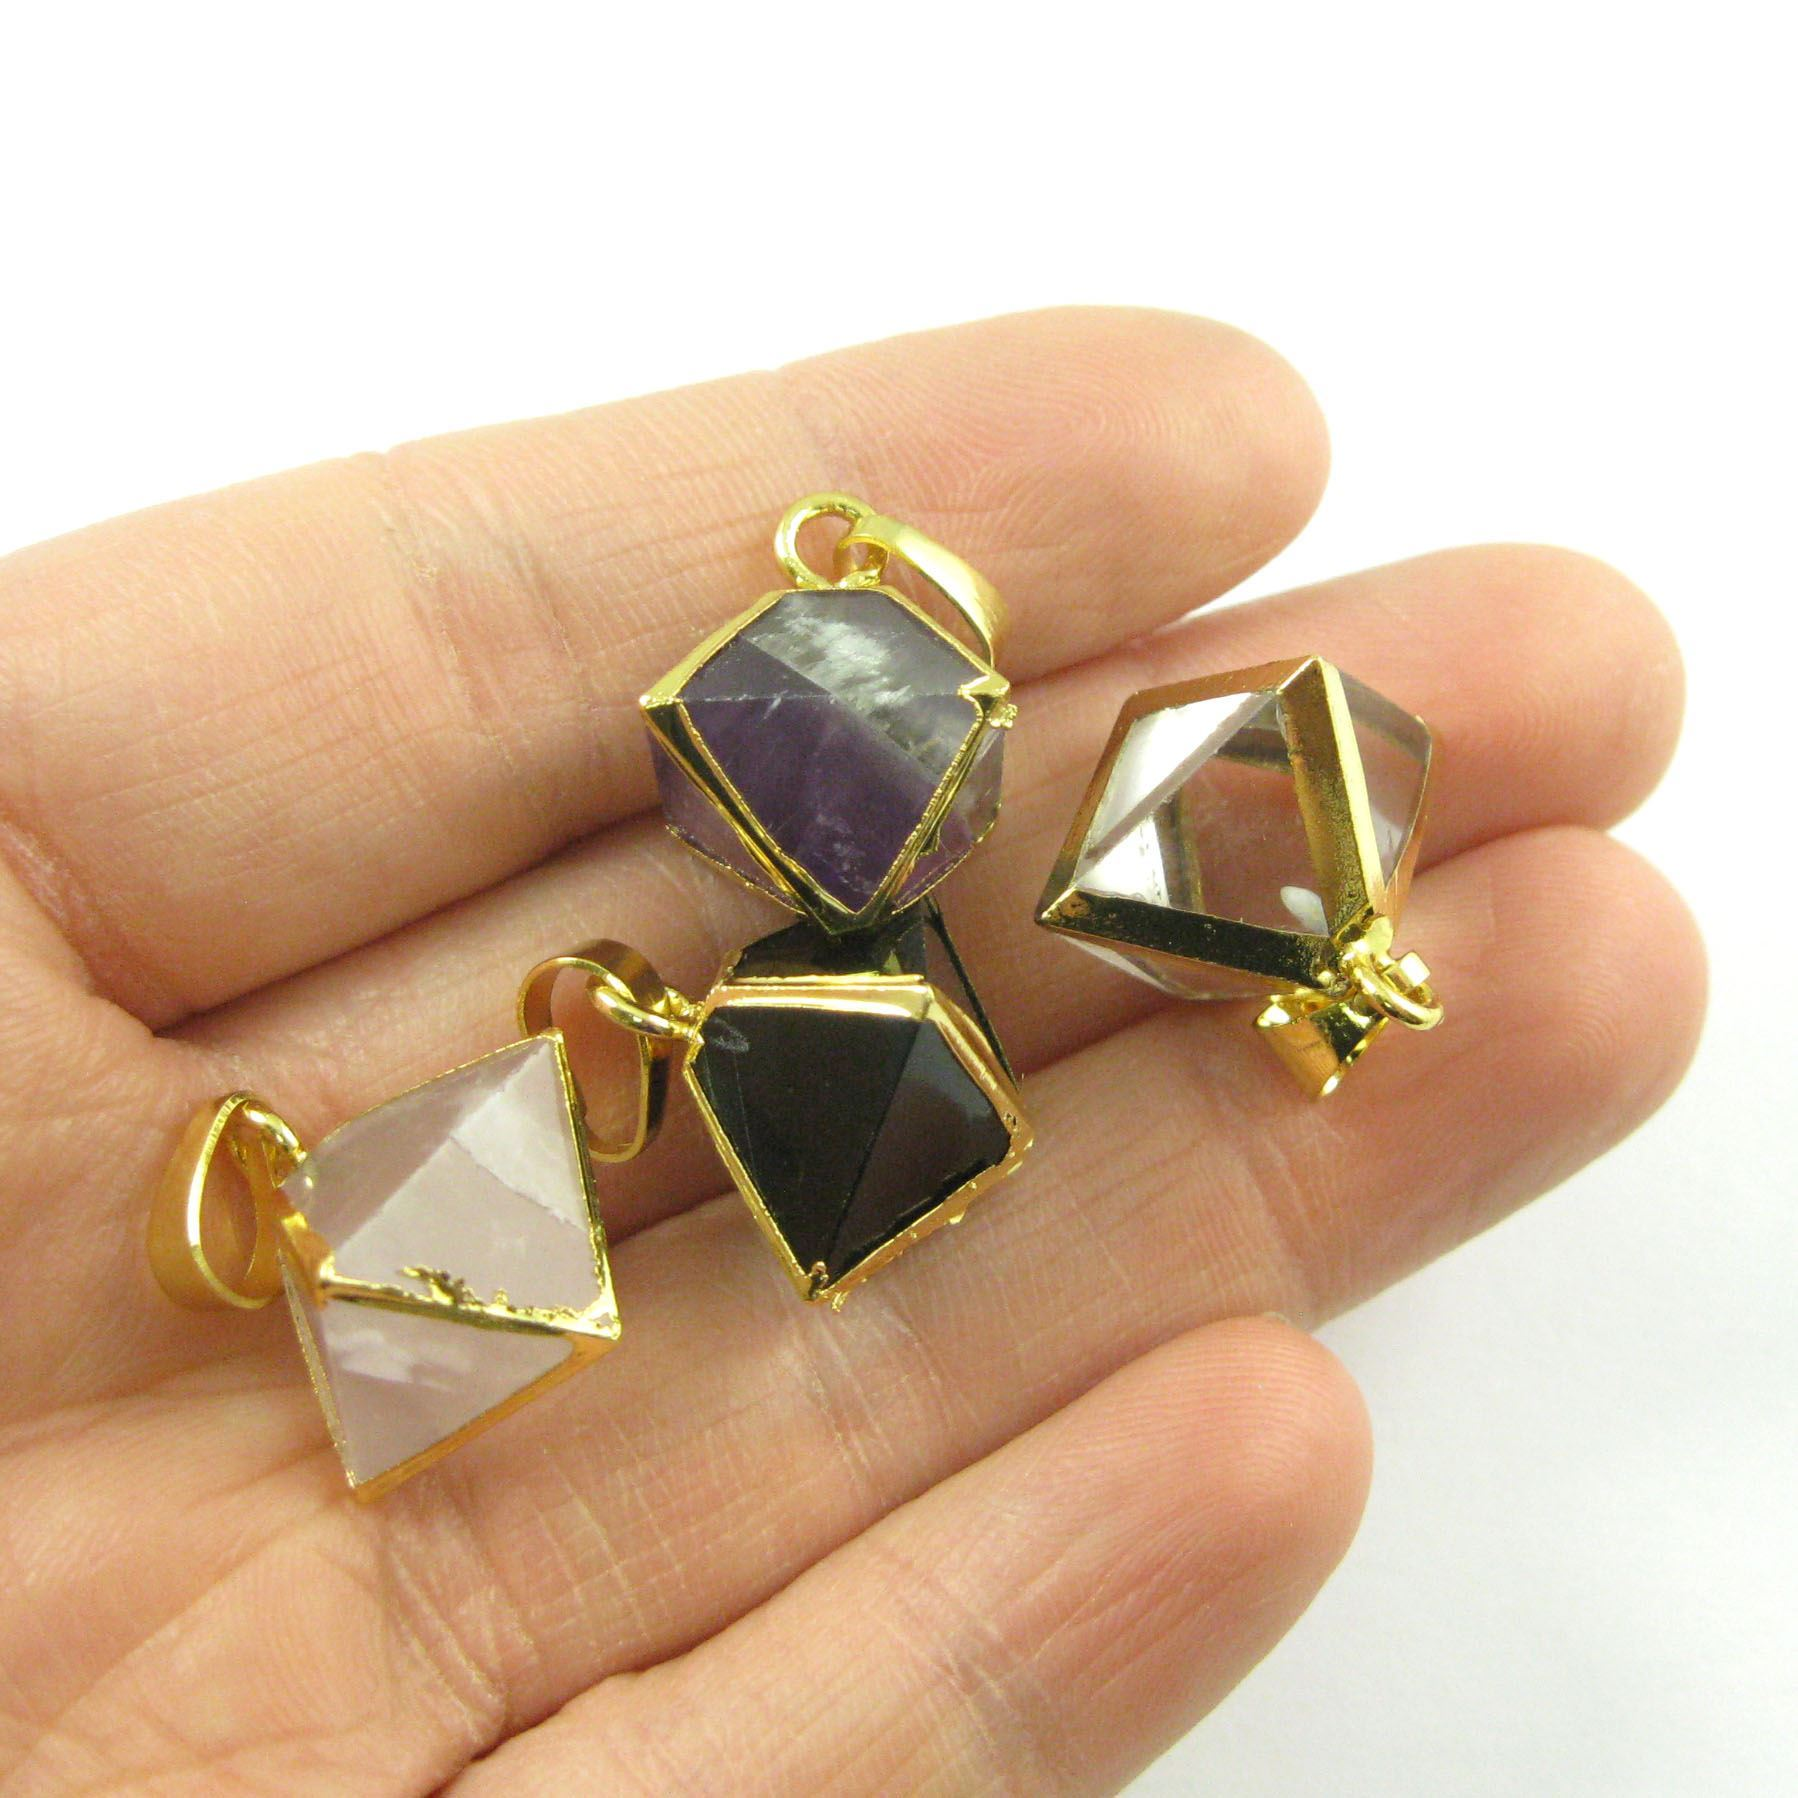 Gemstone Pendant, Octahedron Black Agate Gemstone, 8 sides gemstone Gold plated Pendant,Small Gemstone Rock Pendant- 25m